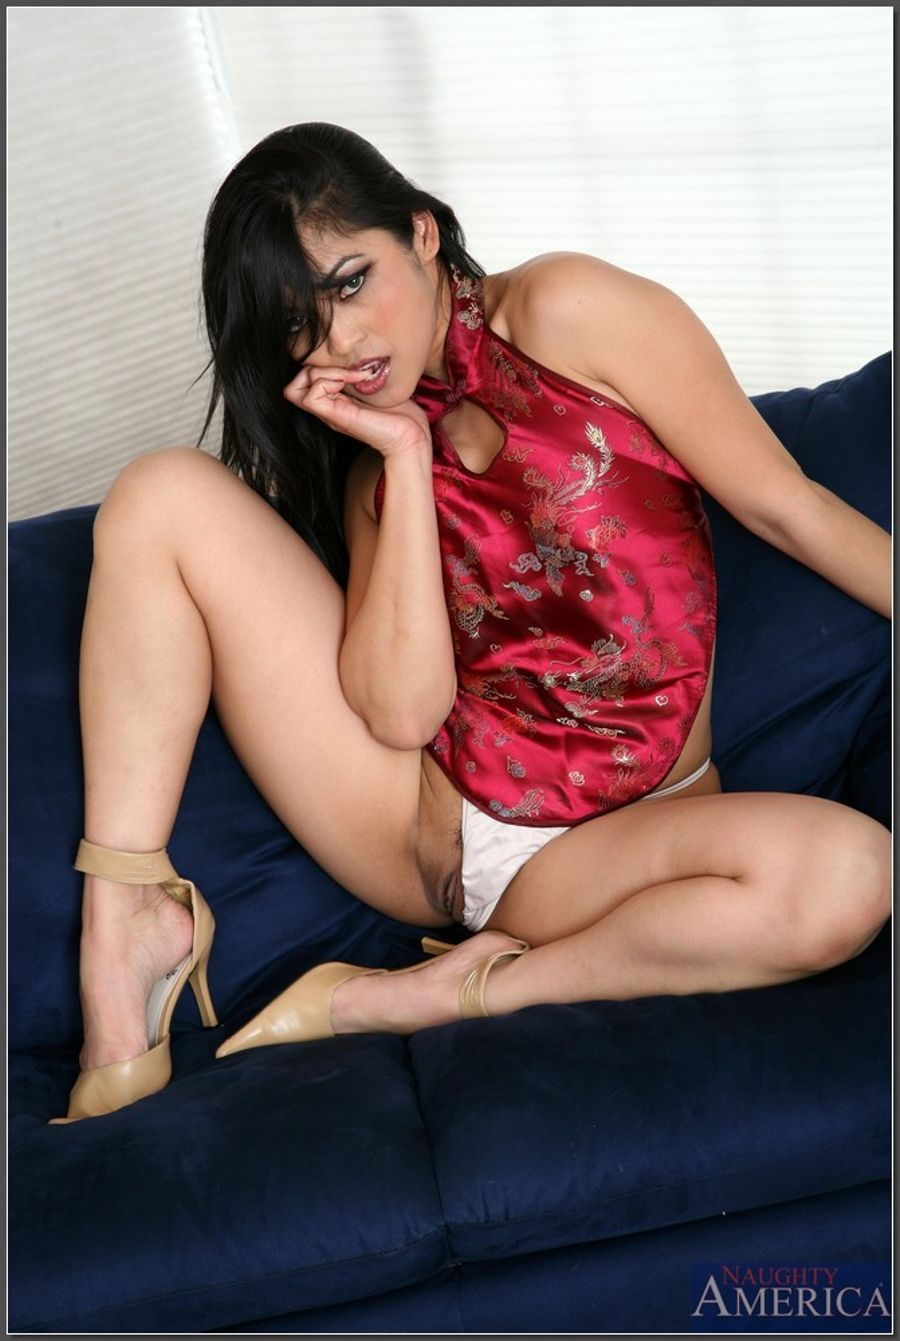 Free porn images gallery mika tan consider, that